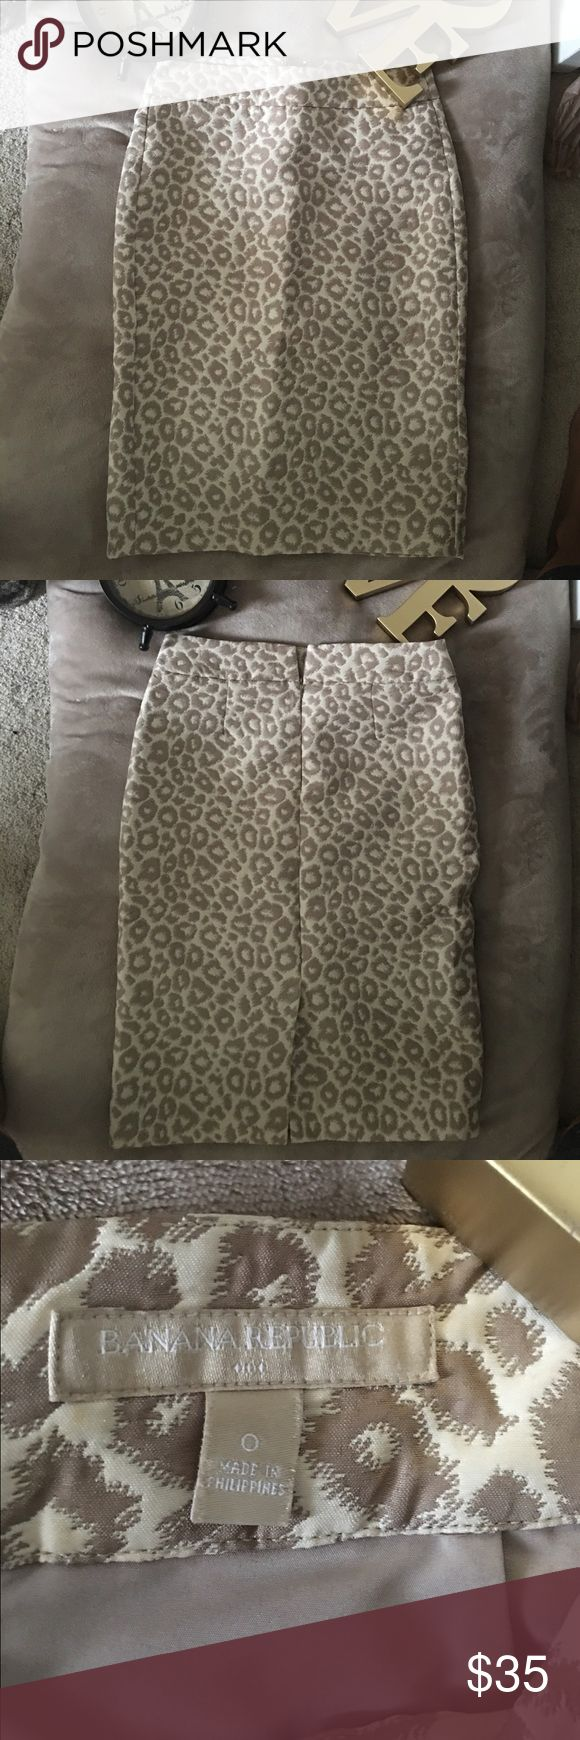 Banana Republic Leopard Print Pencil Skirt Never worn, but so cute!! Hits below the knee and Is very flattering. Banana Republic Skirts Pencil